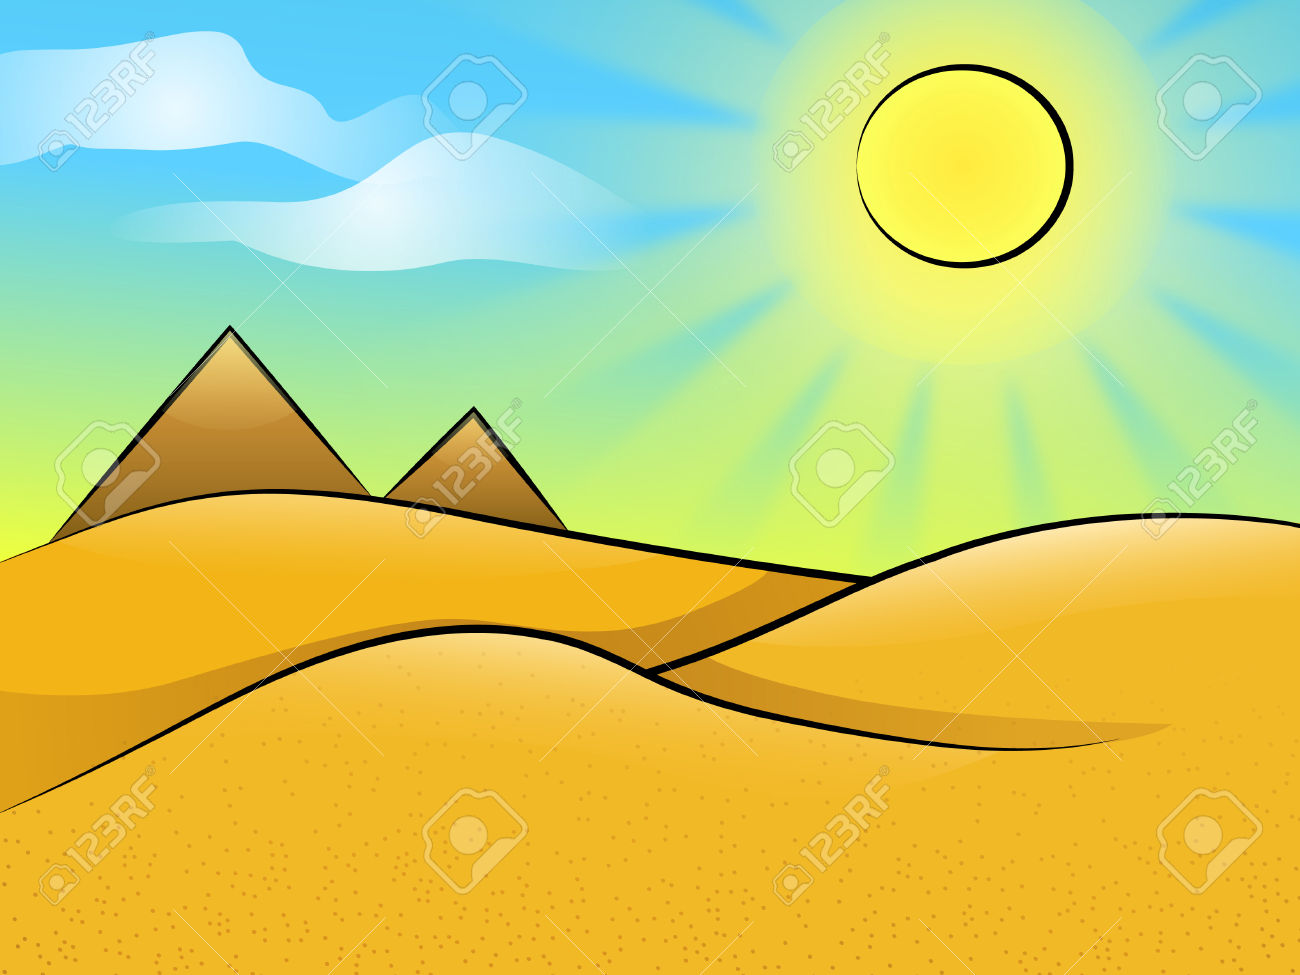 Landscape Clipart At Getdrawings Com Free For Personal